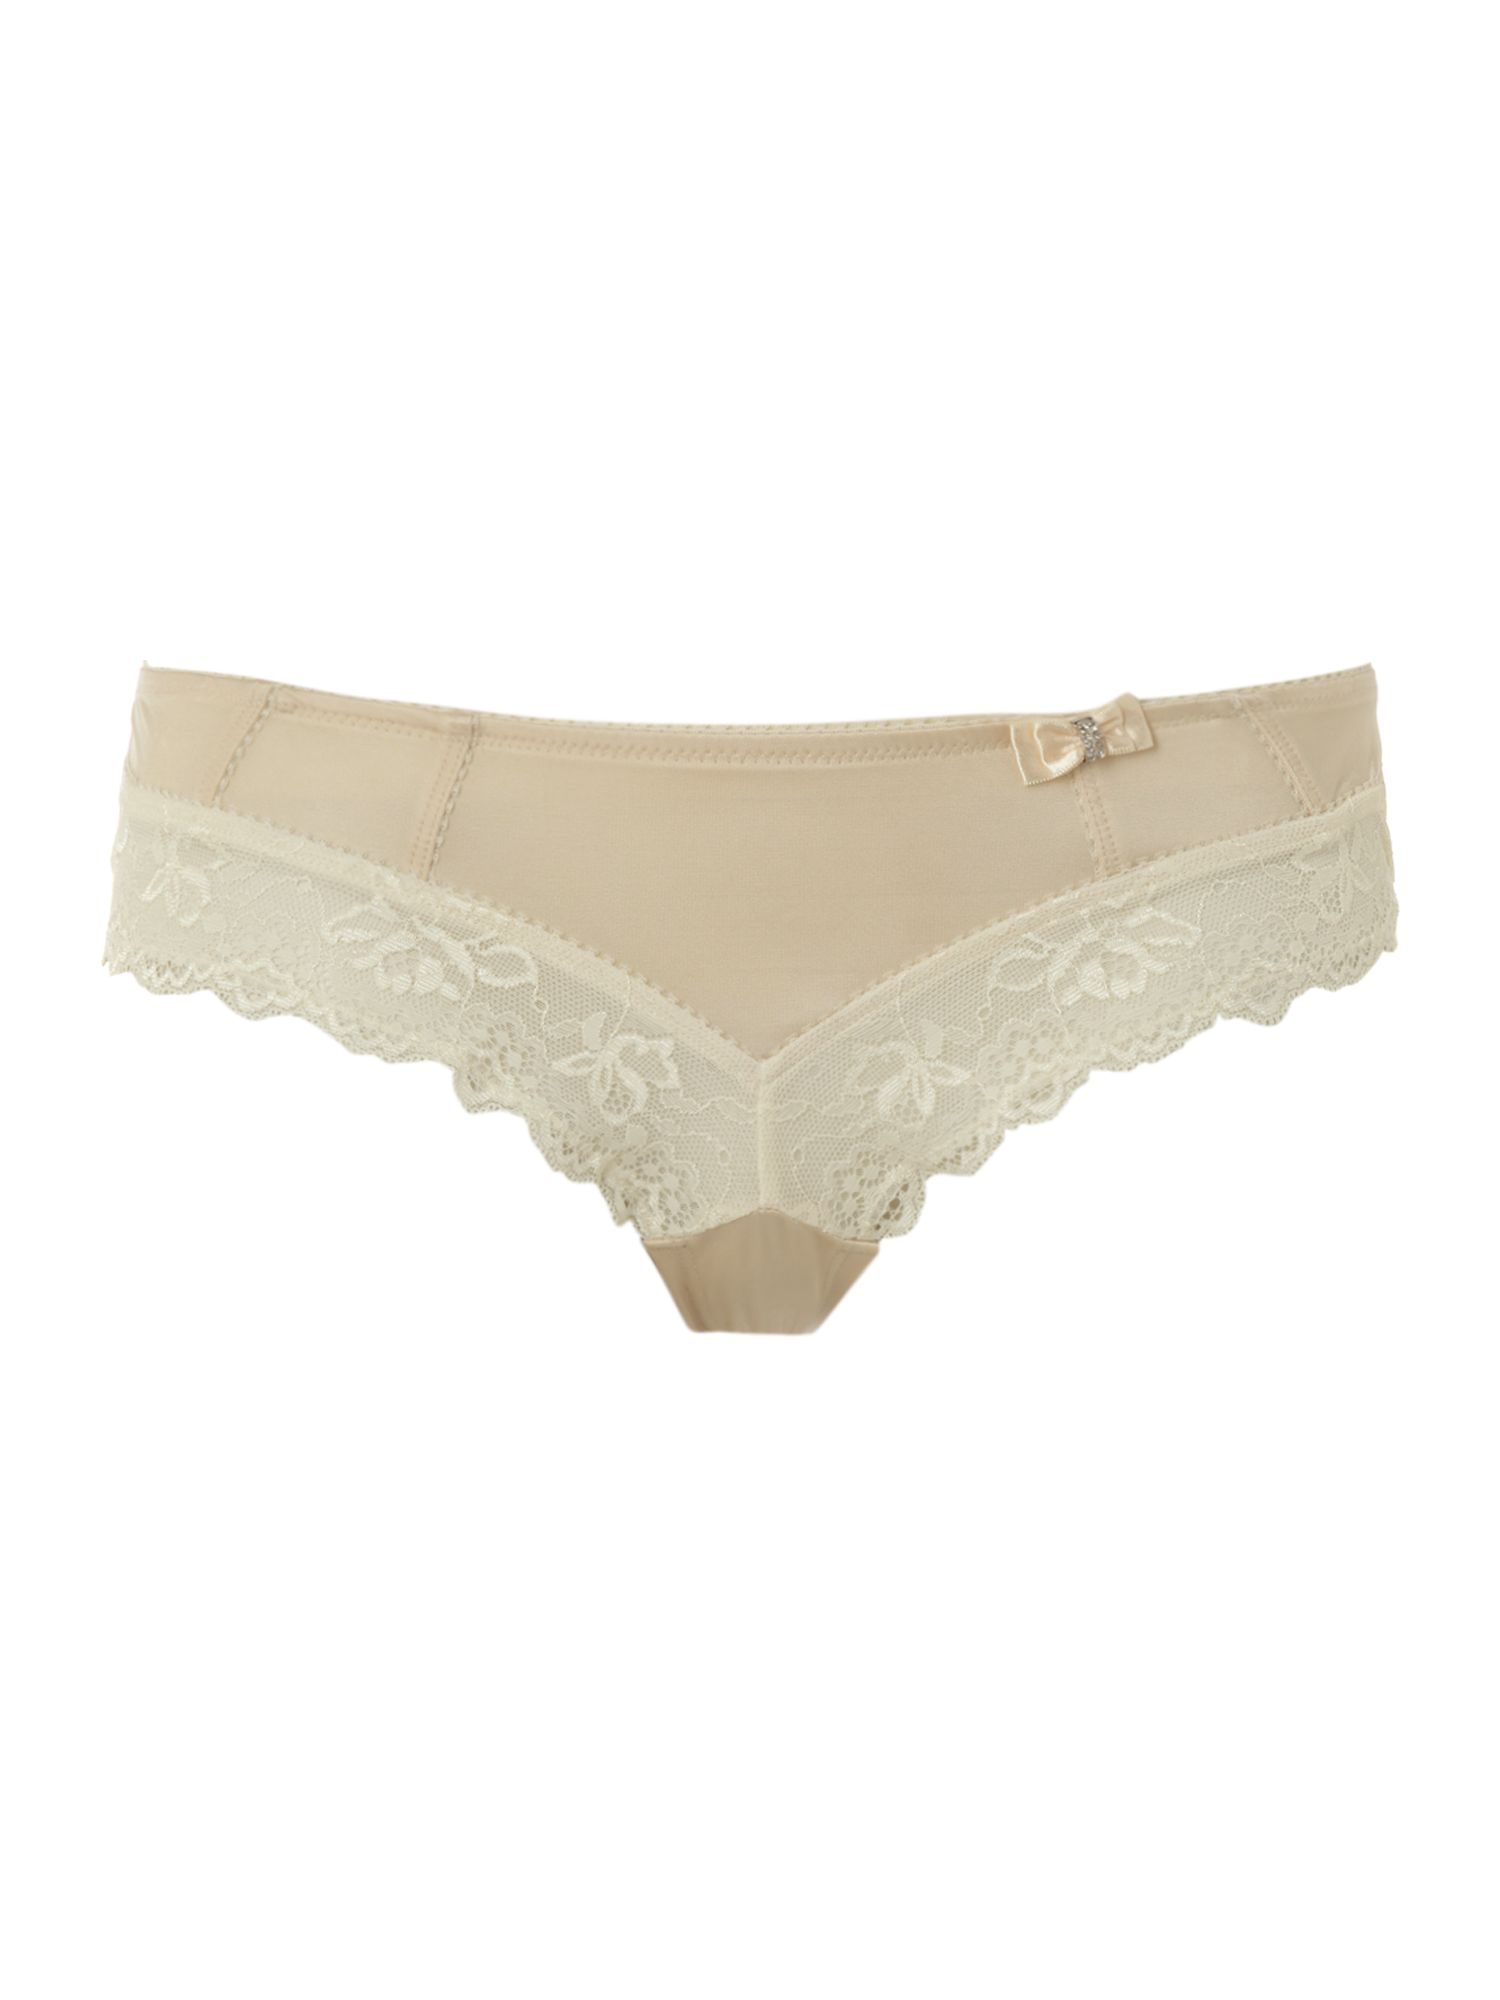 Luminous maternity french knicker